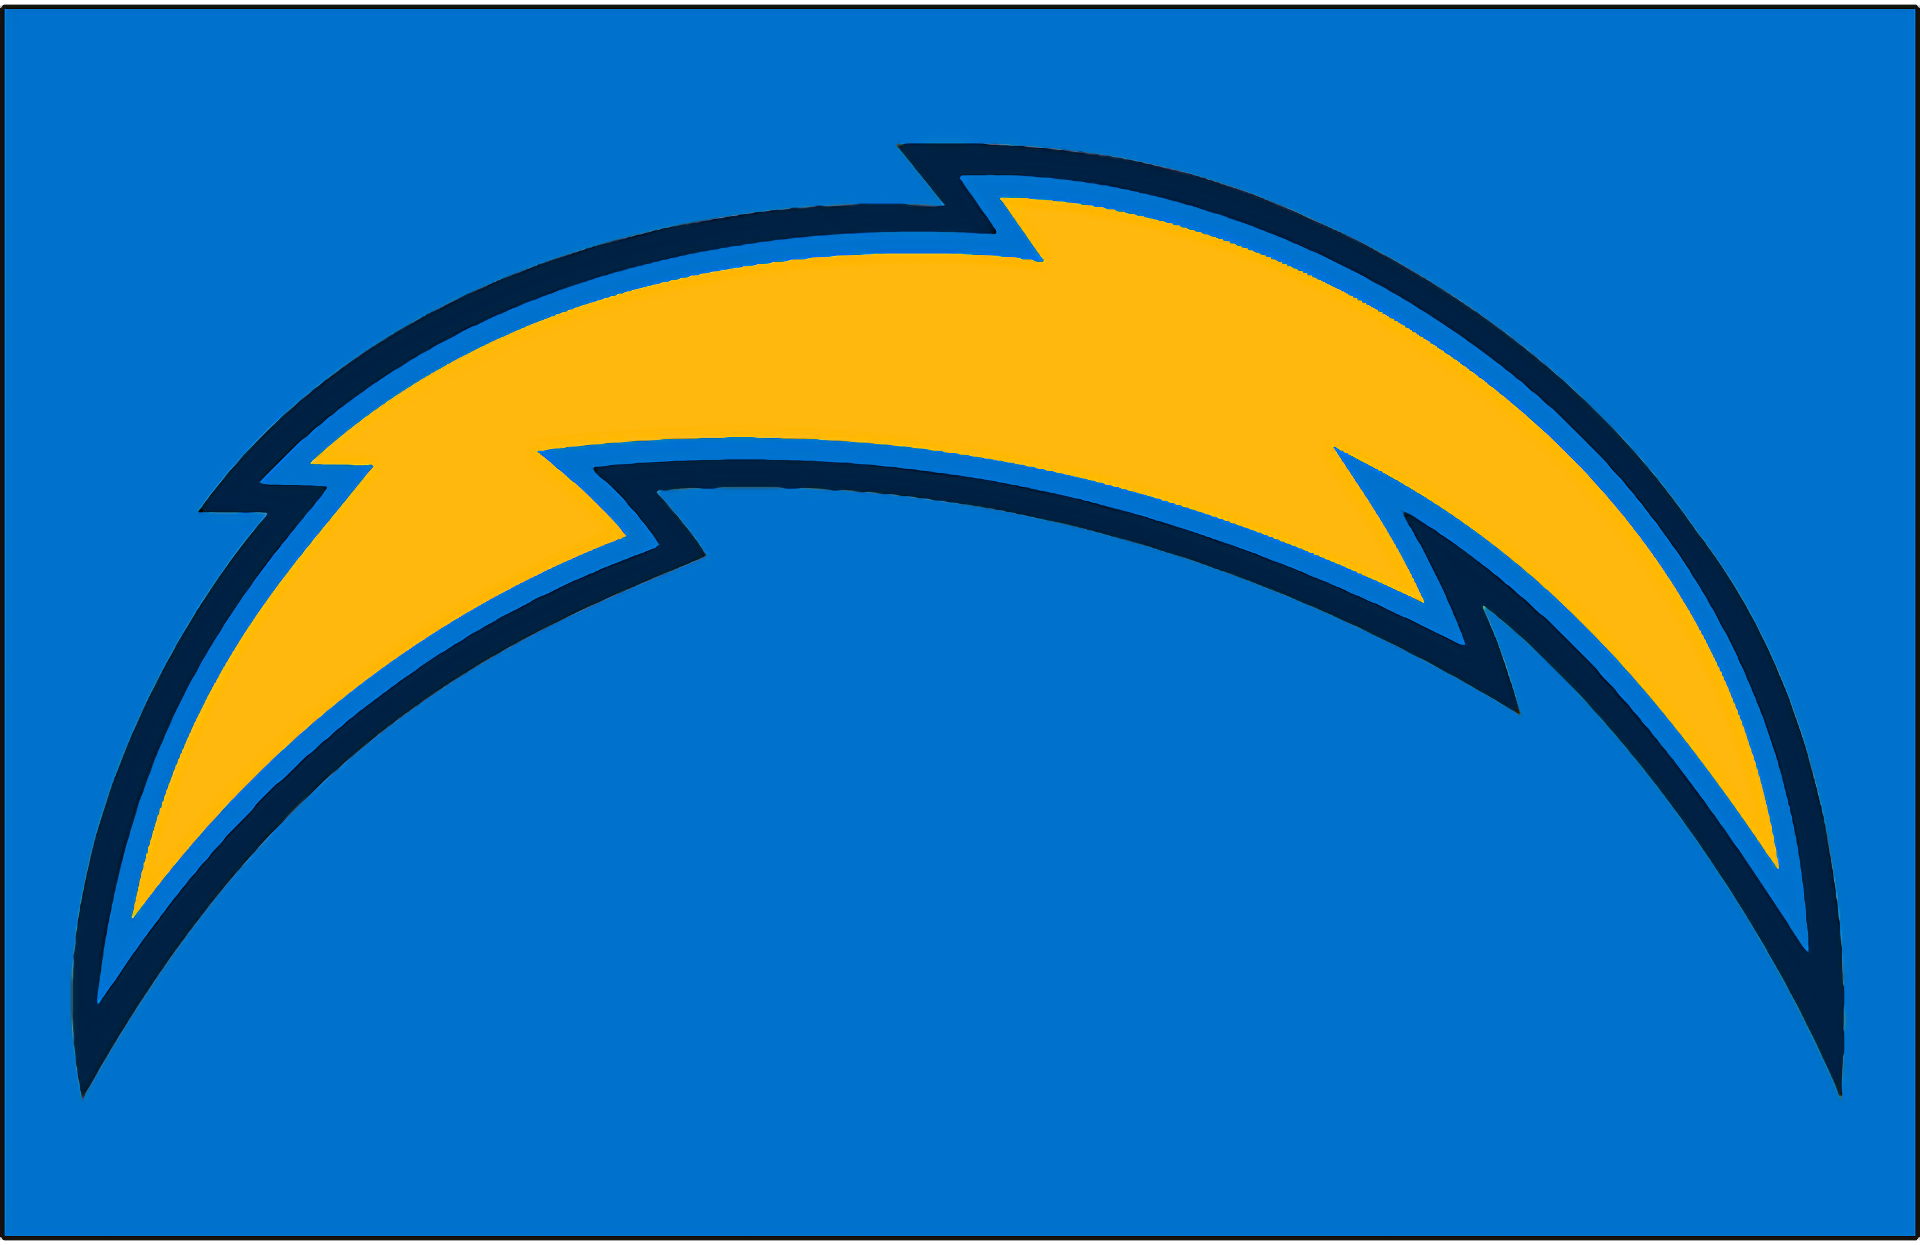 46 los angeles chargers hd wallpapers background images rh wall alphacoders com Los Angeles Logo Graffiti Los Angeles Gangster Logo